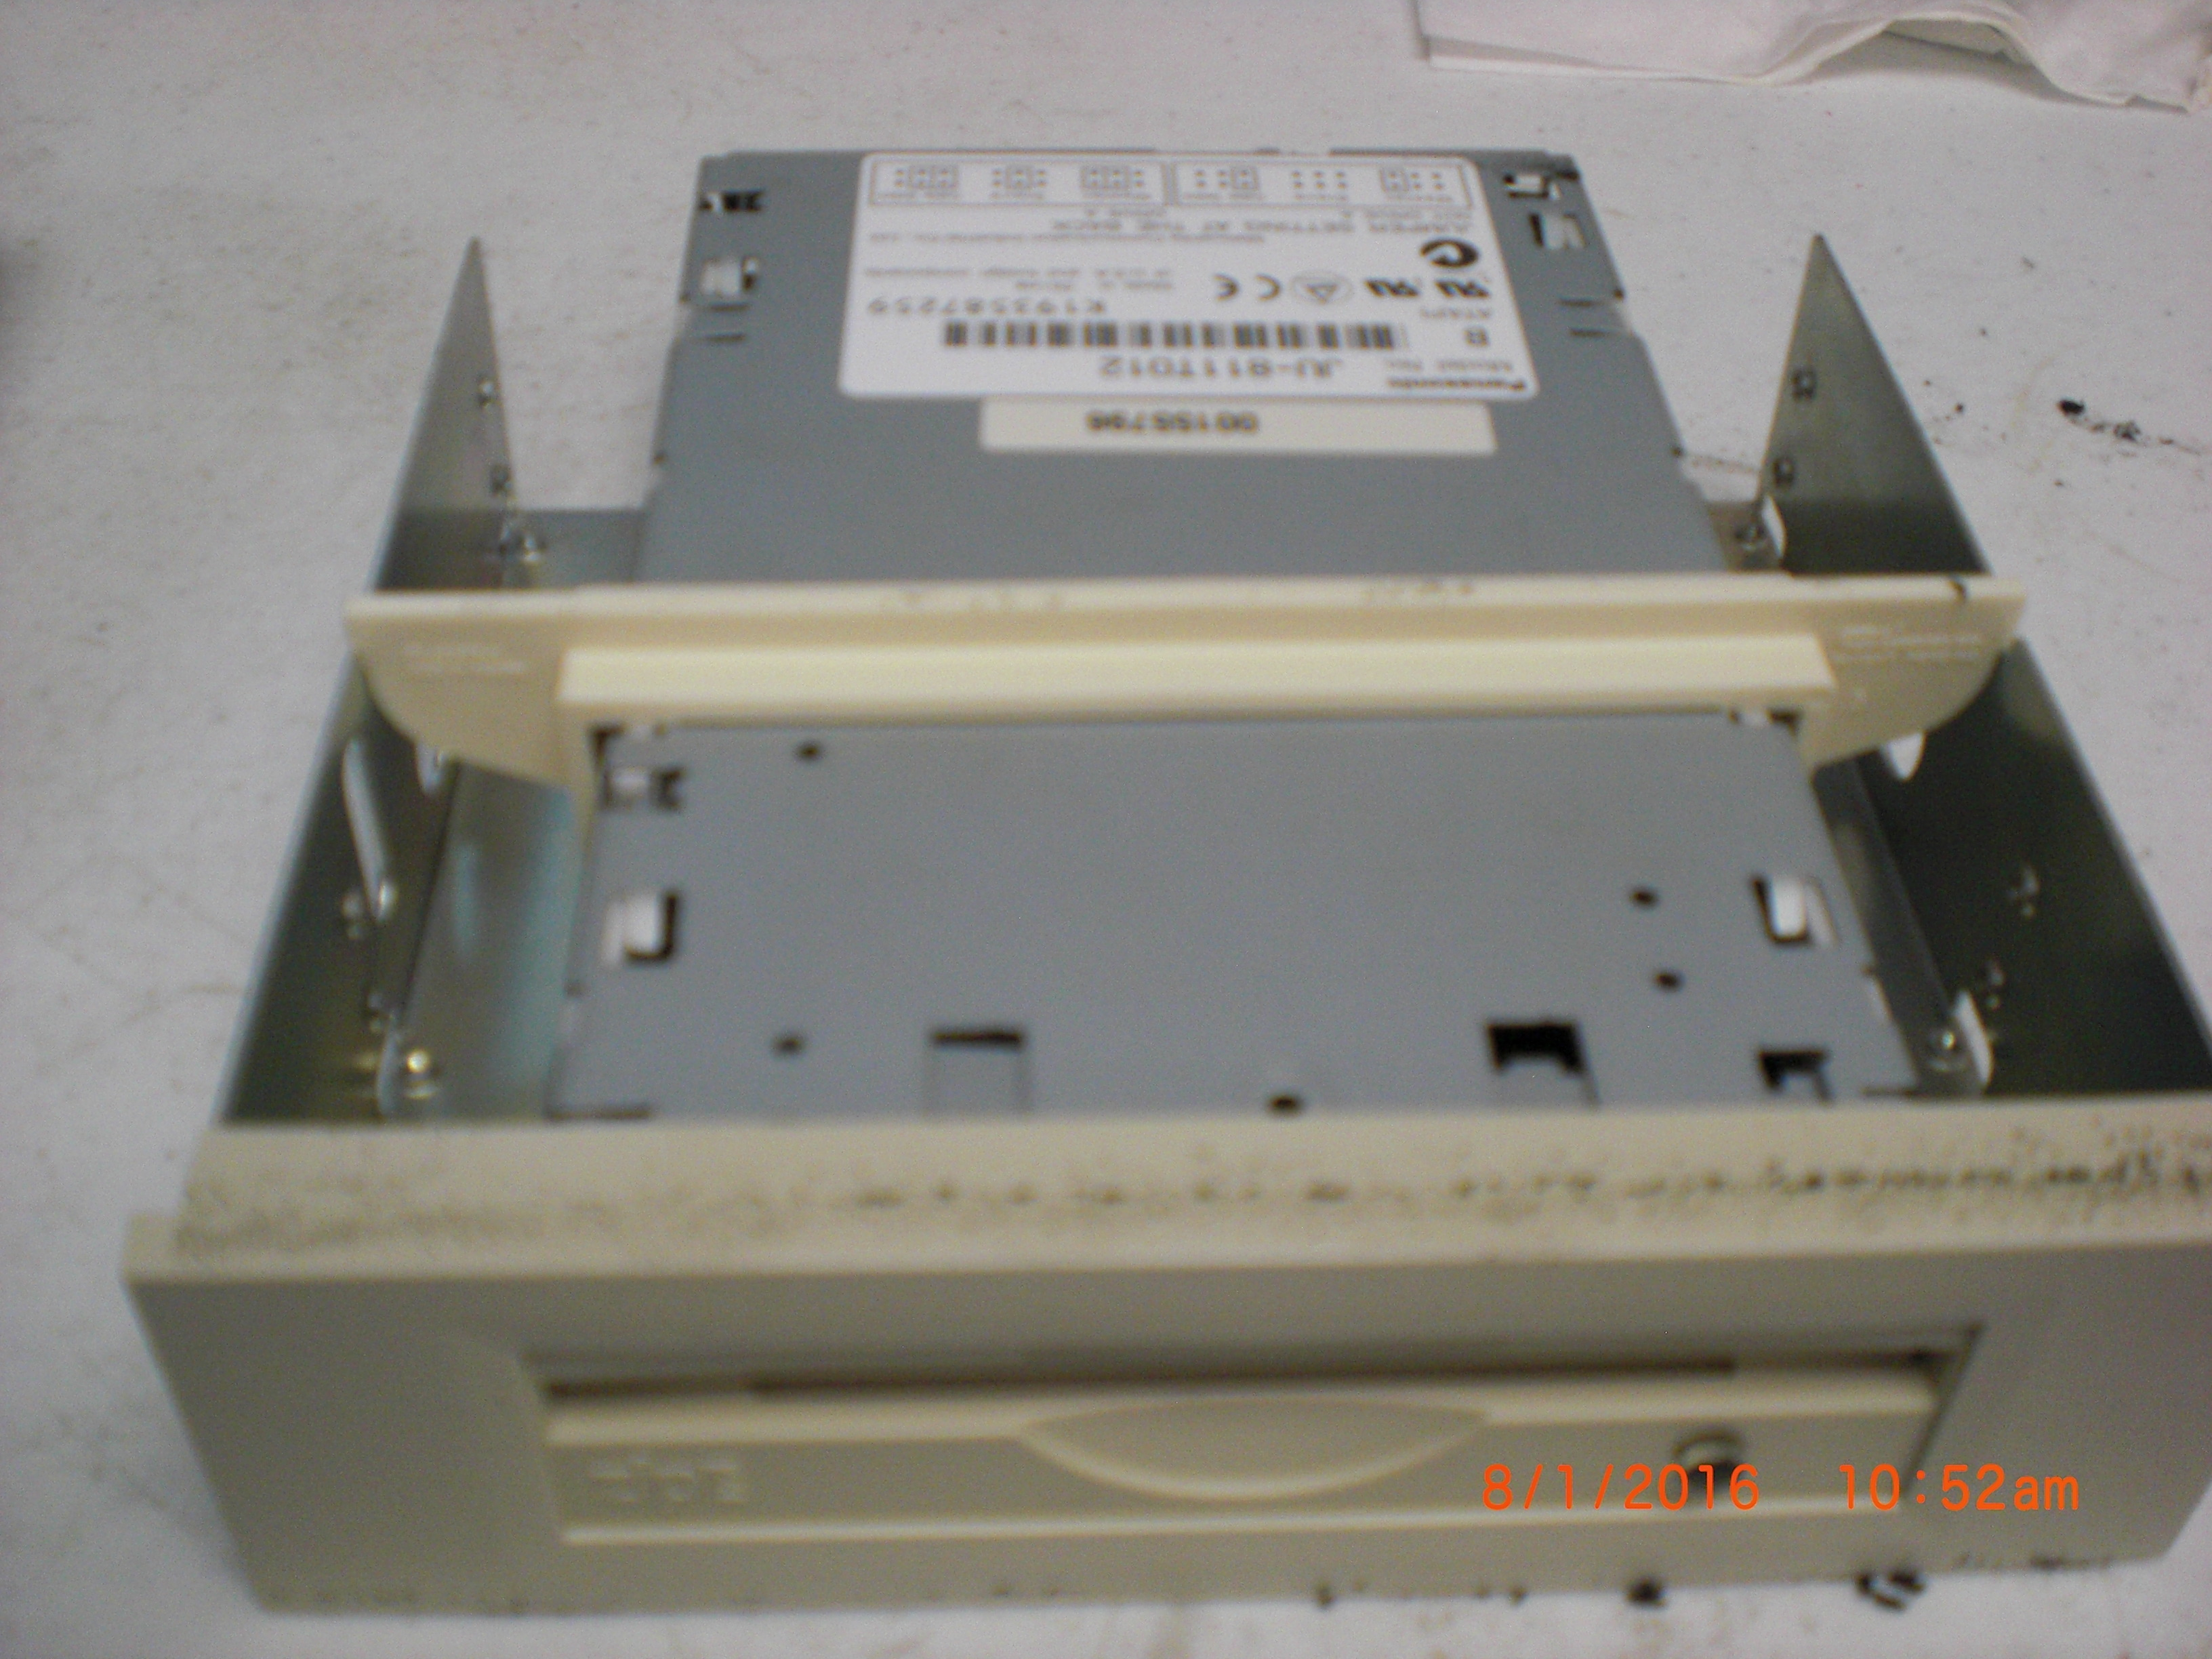 Computer Accessory PANASONIC JU-811T012 Internal 100  Zip Drive IDE